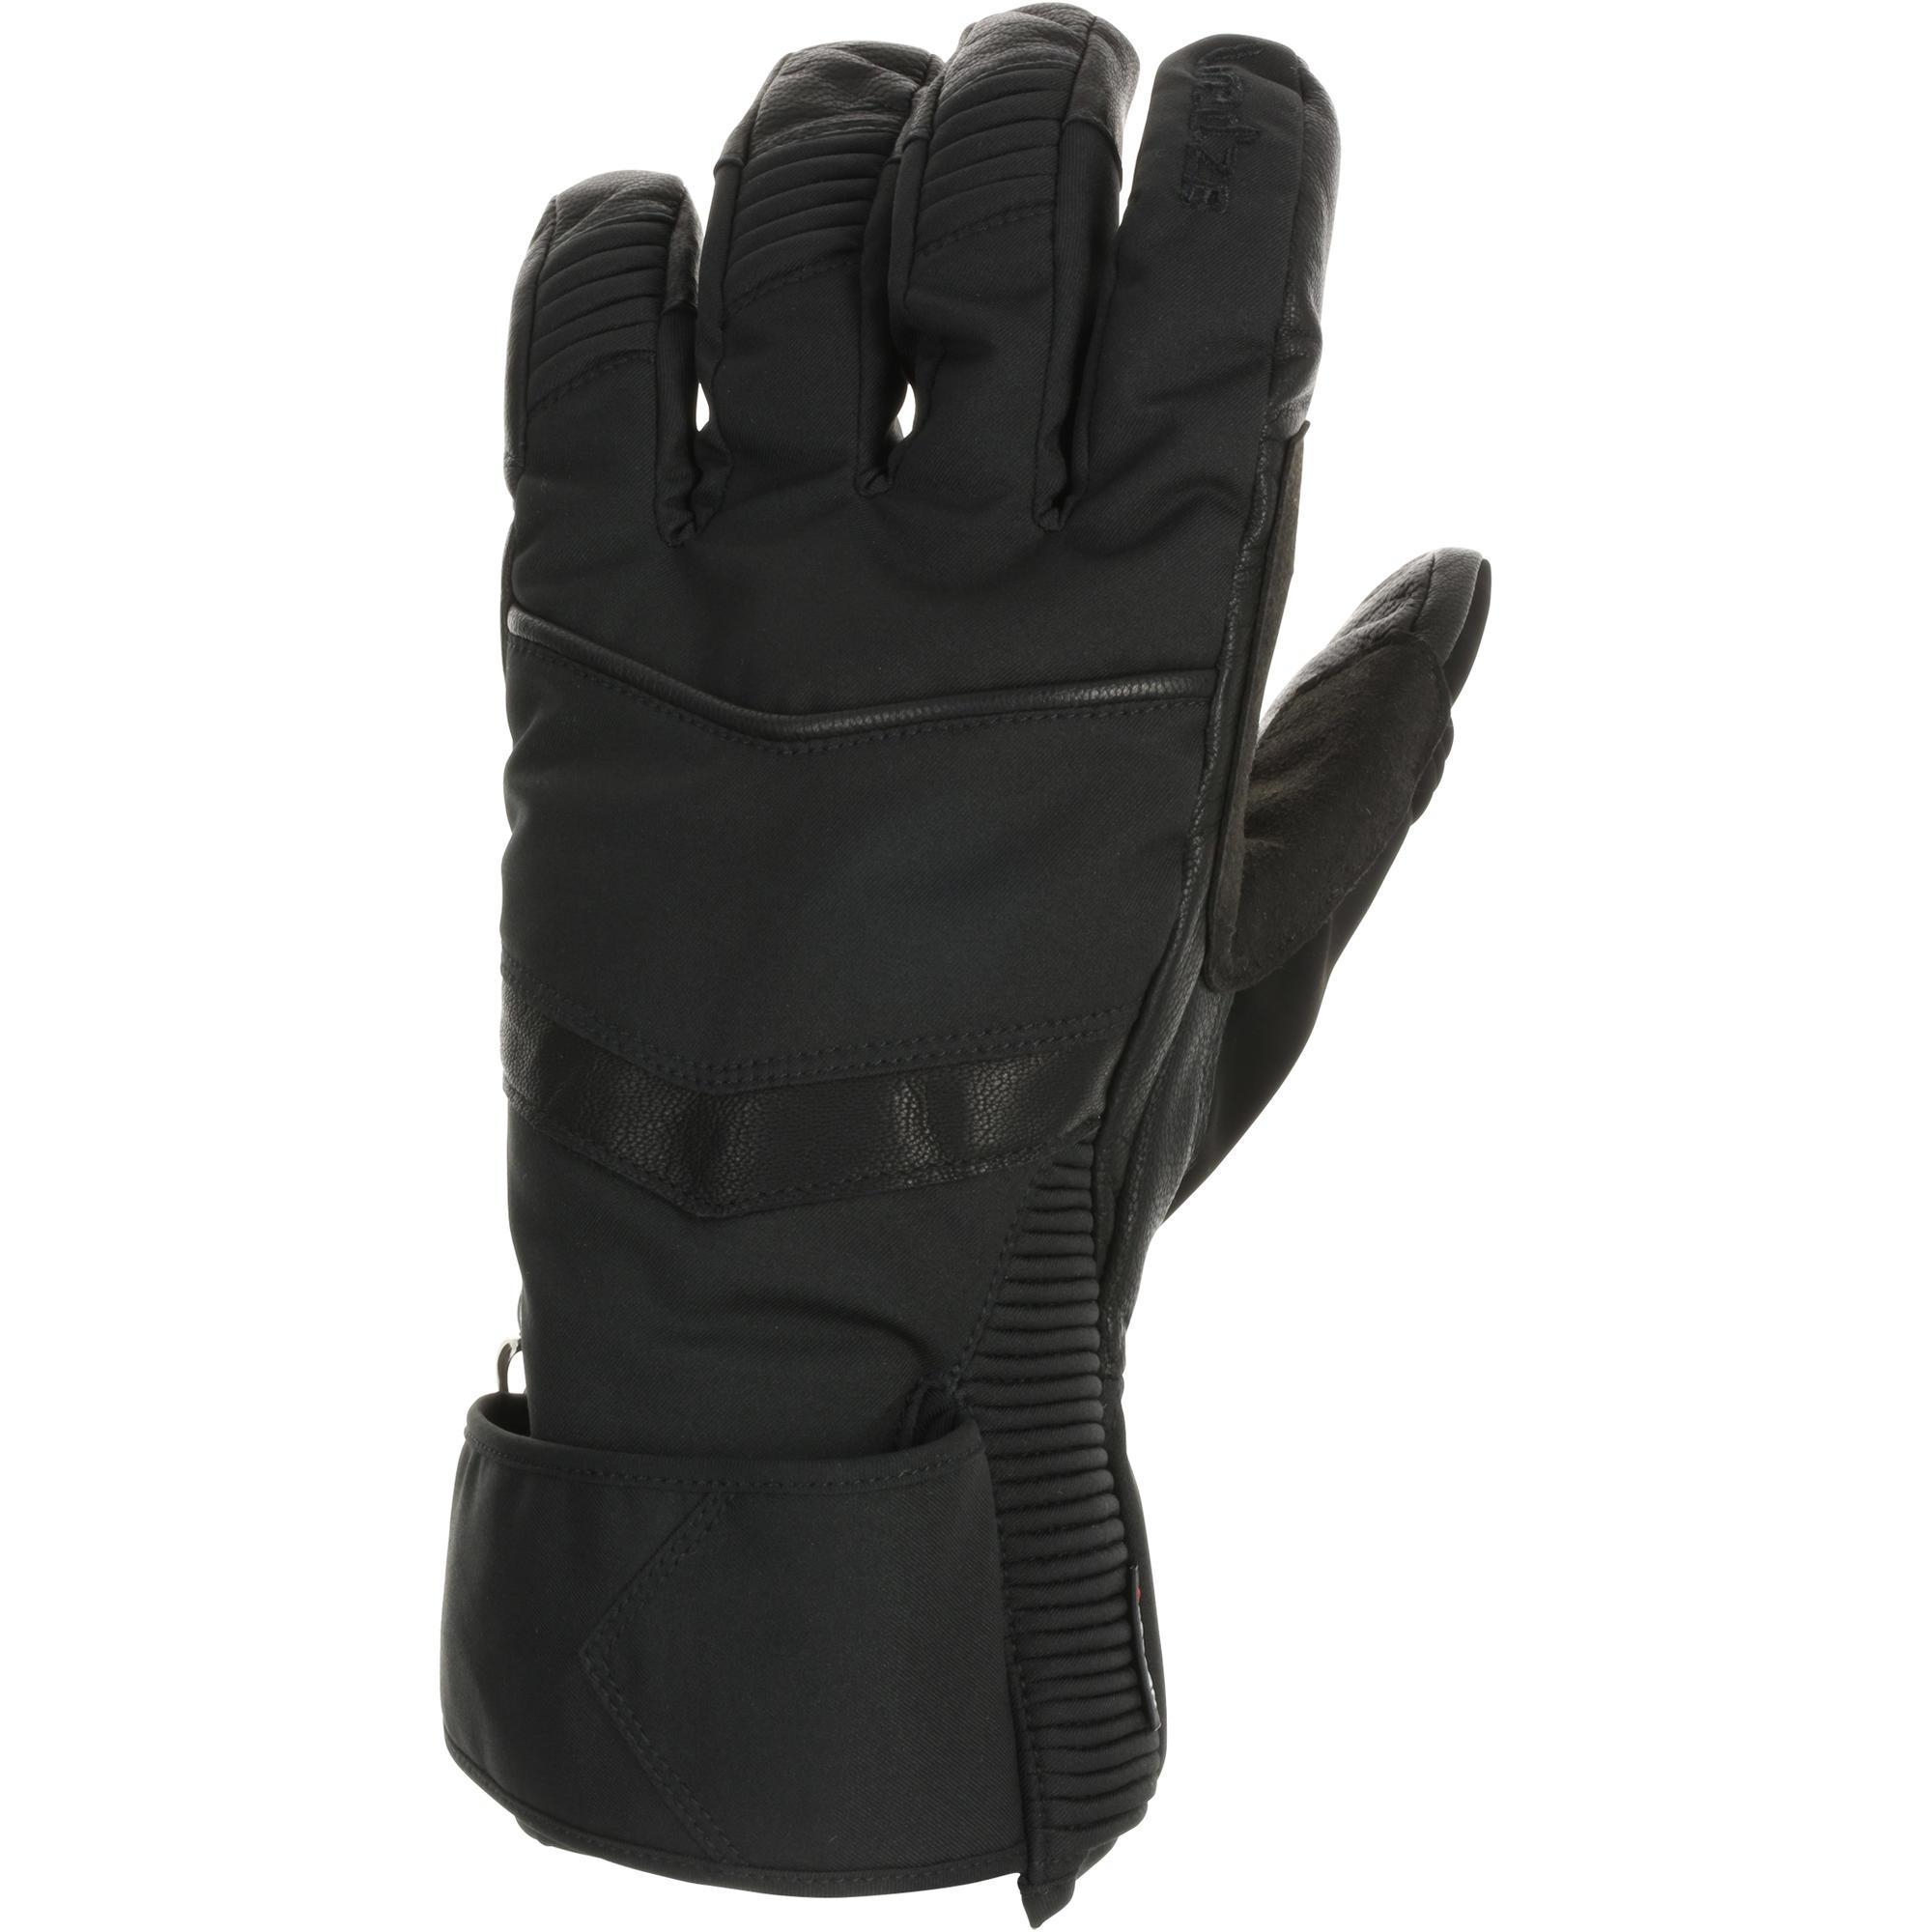 Mens leather gloves target - Brand Men S Ski Gloves Snowboard Snowmobile Motorcycle Riding Winter Windproof Waterproof Snow St27